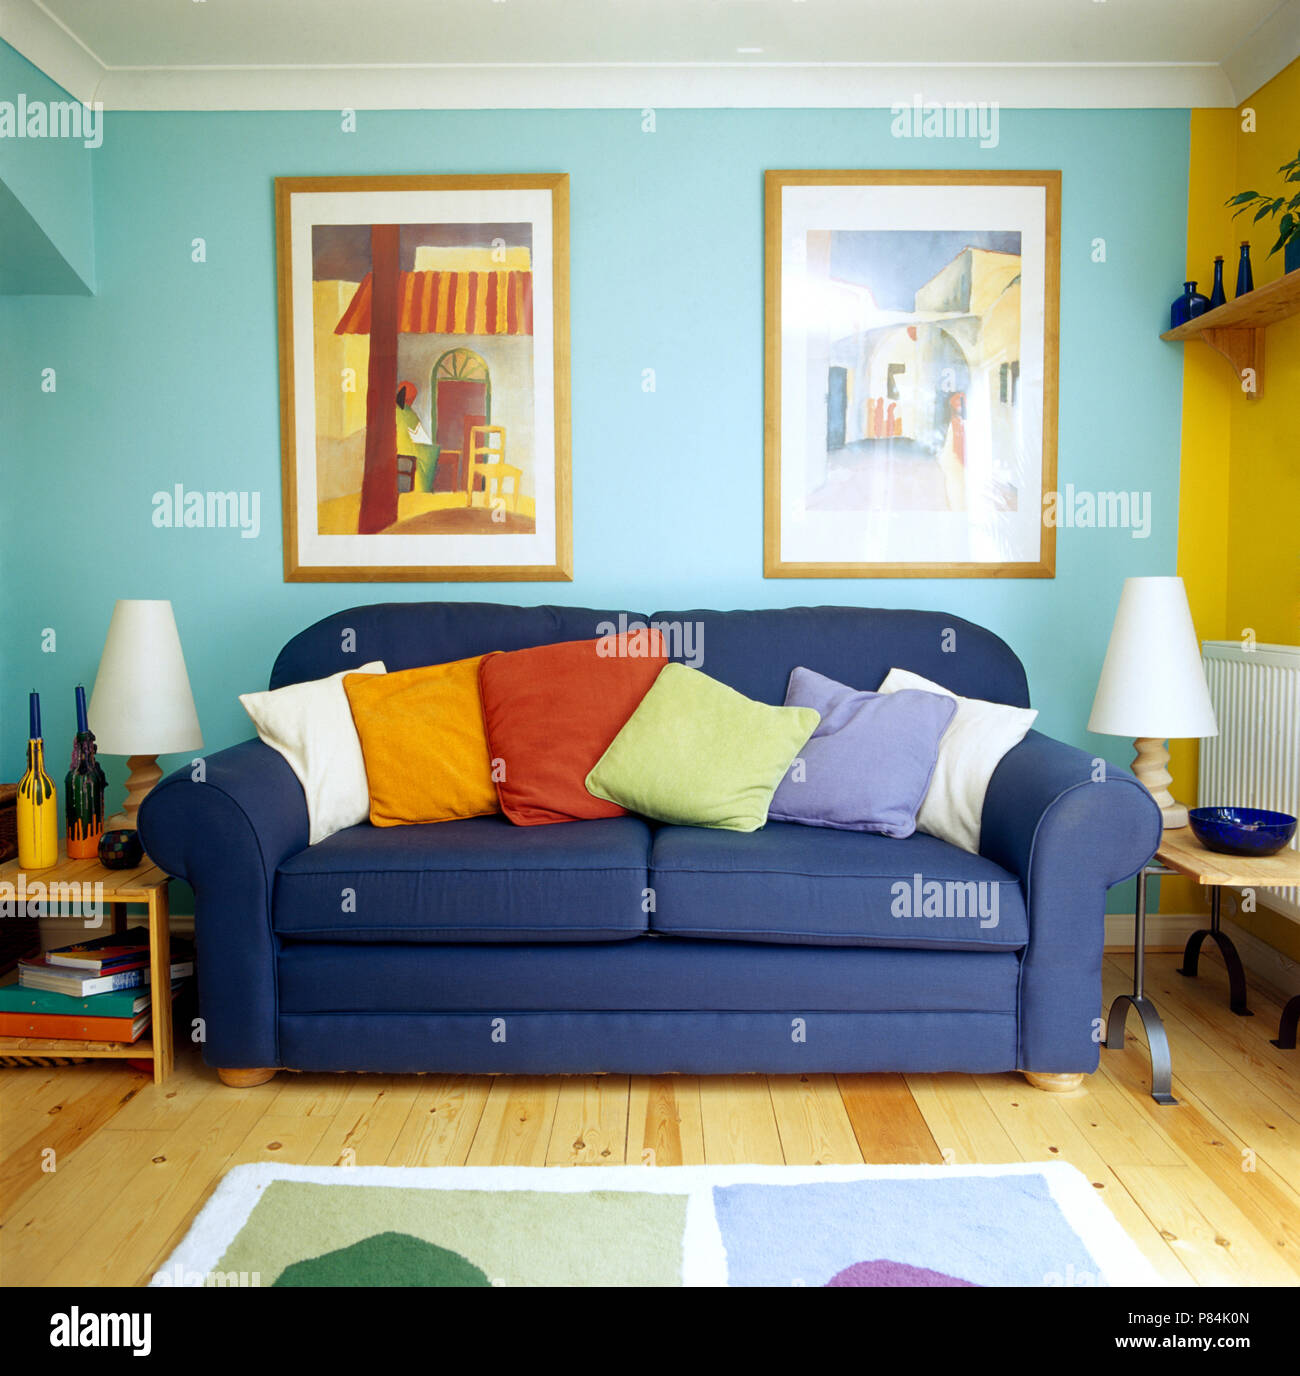 Colourful Pictures On Wall Above A Blue Sofa With Multi Coloured Cushions  In A Pale Turquoise Economy Style Living Room